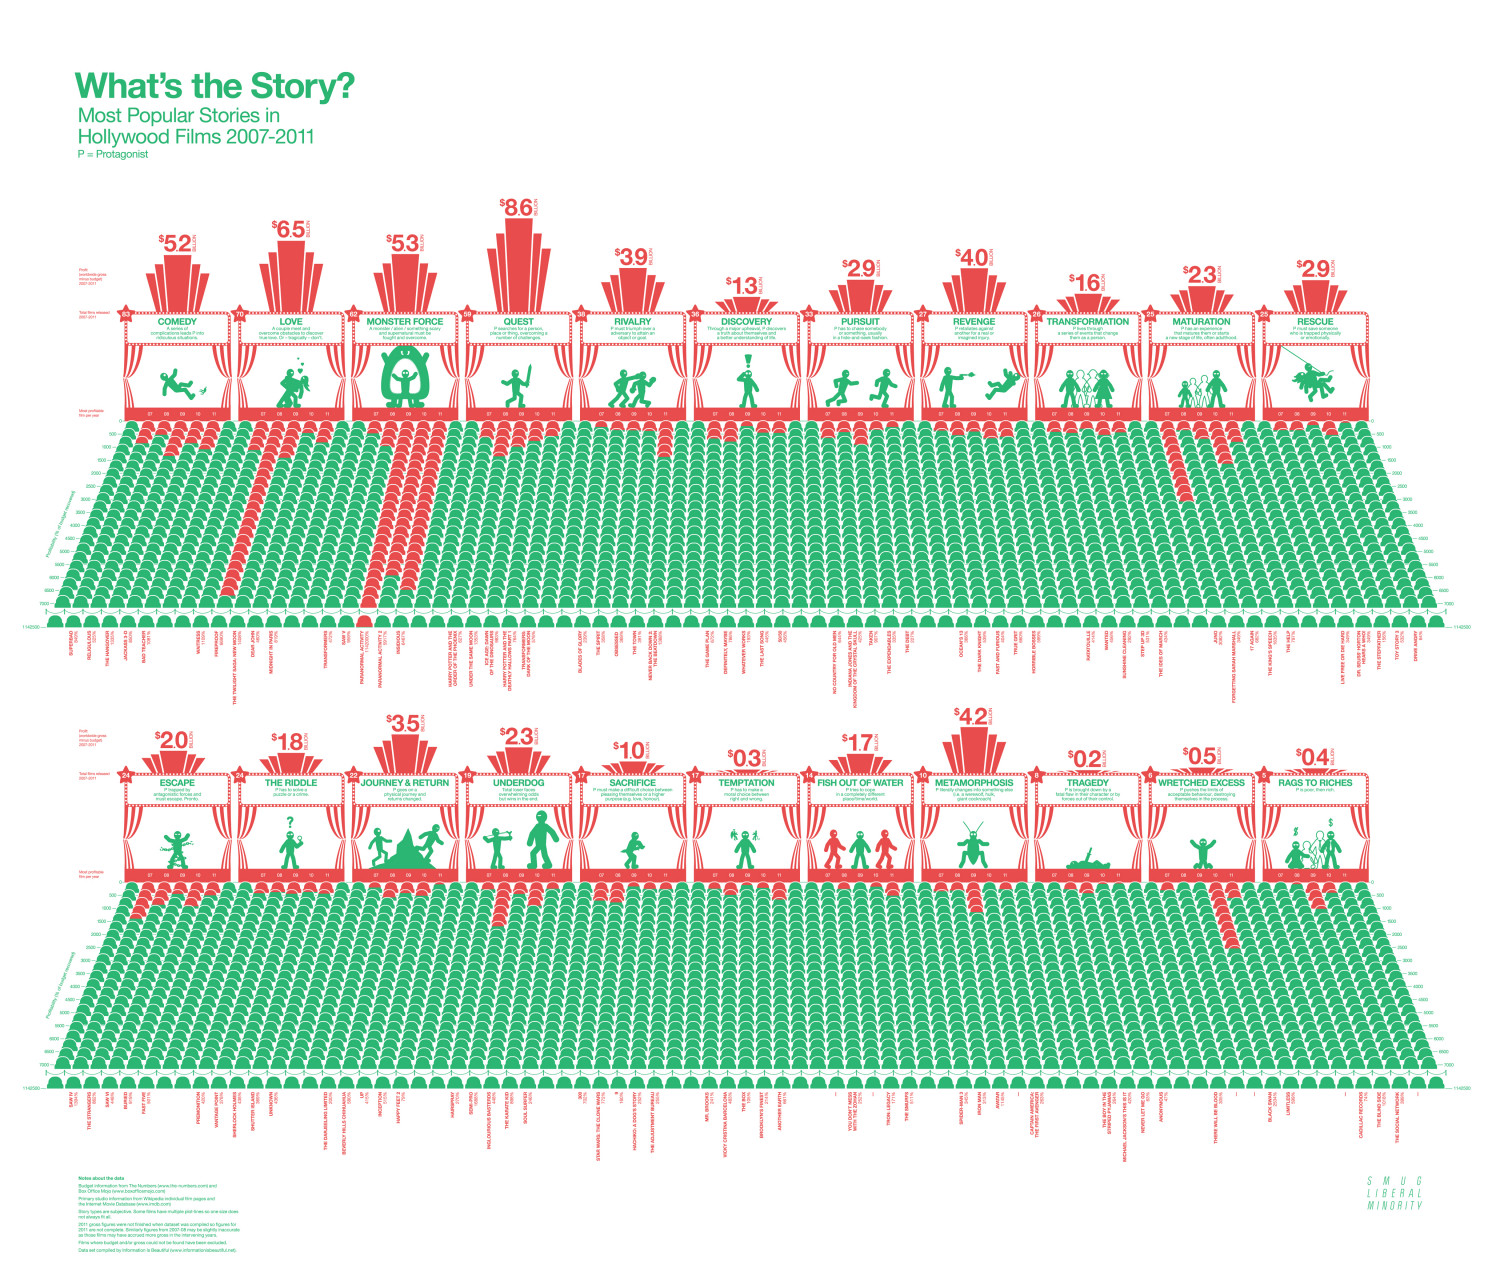 What's The Story? Most Popular Stories in Hollywood Films 2007-2011 Infographic